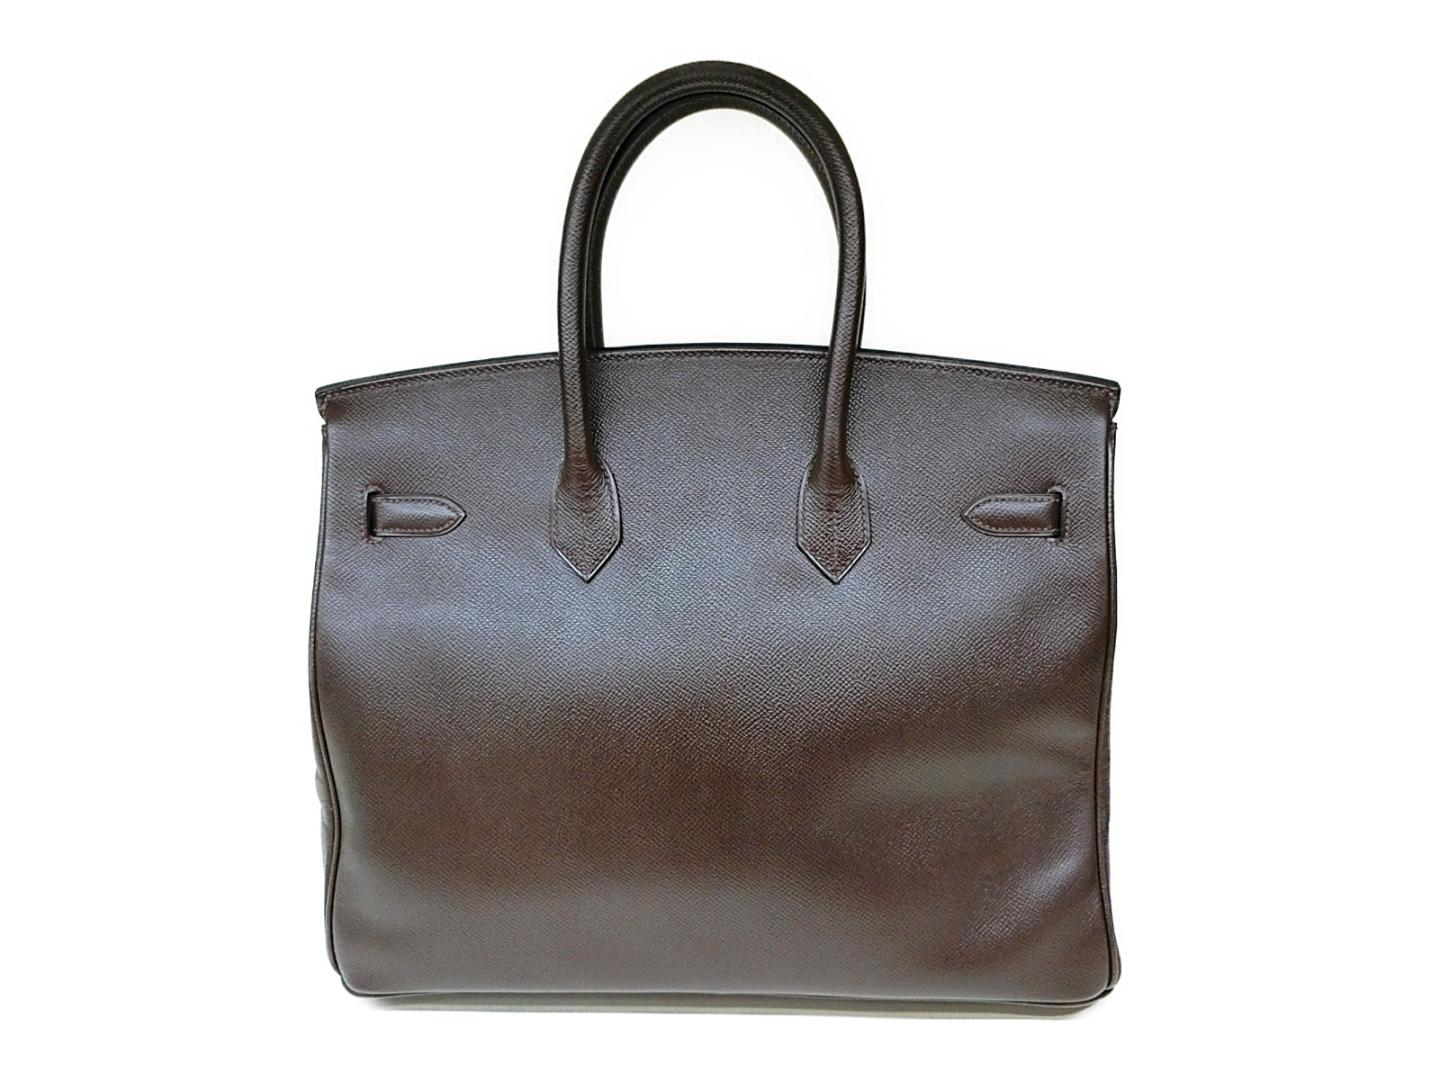 4535fea242f8 Authentic HERMES Birkin 35 Hand tote Bag Couchevel leather Marron Brown GHW